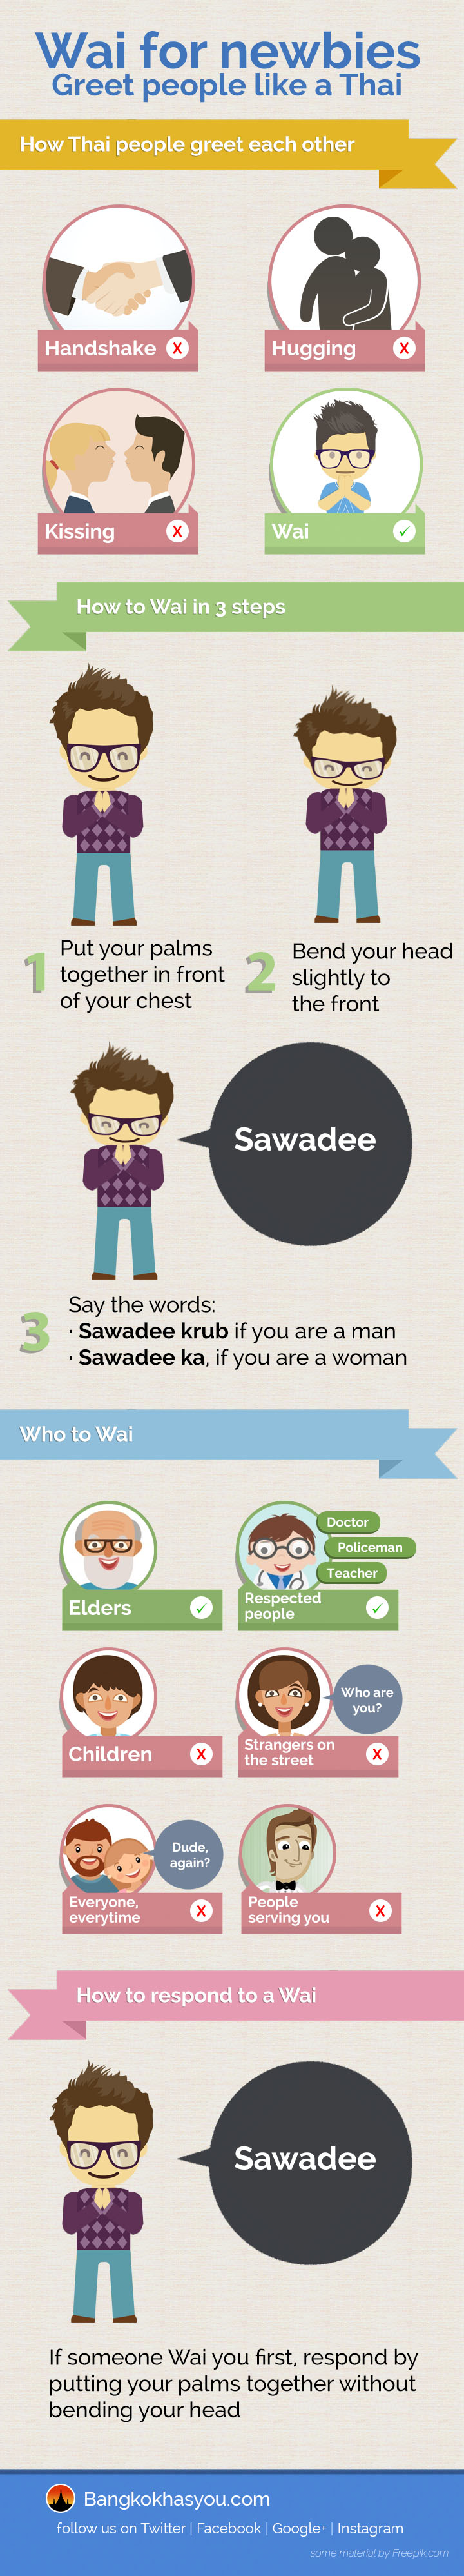 How to Wai